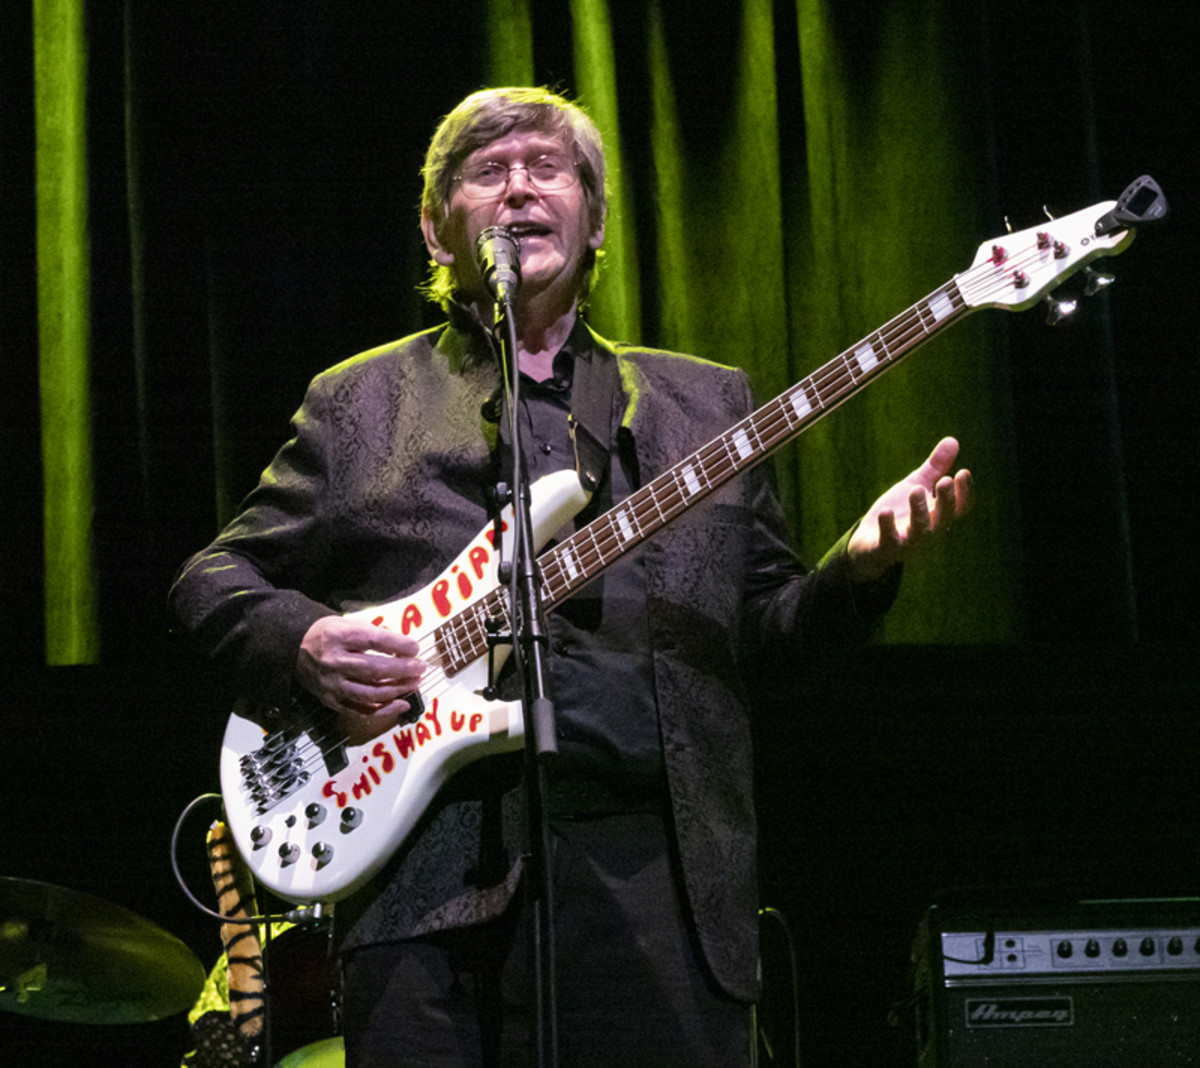 Chris White on bass, performing live with The Zombies. Photo by Bruce Frumerman.